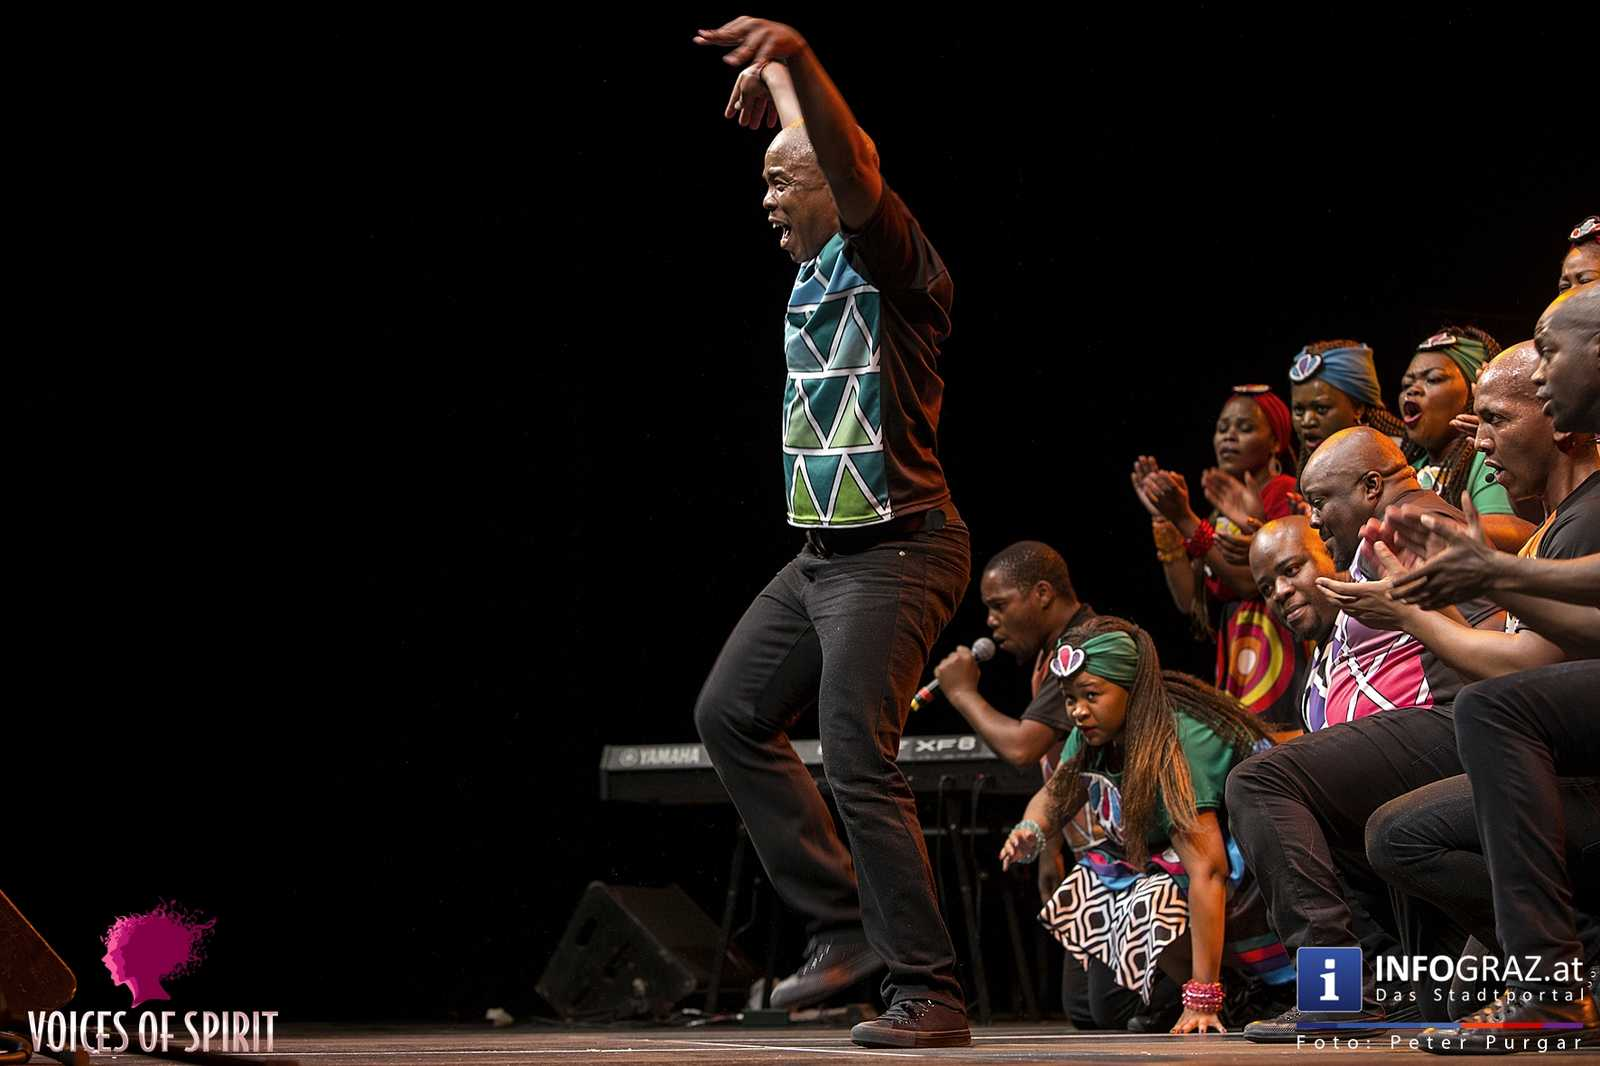 soweto gospel choir internationales chorfestival statdthalle graz voices of spirit eroeffnung festivals 2016 062